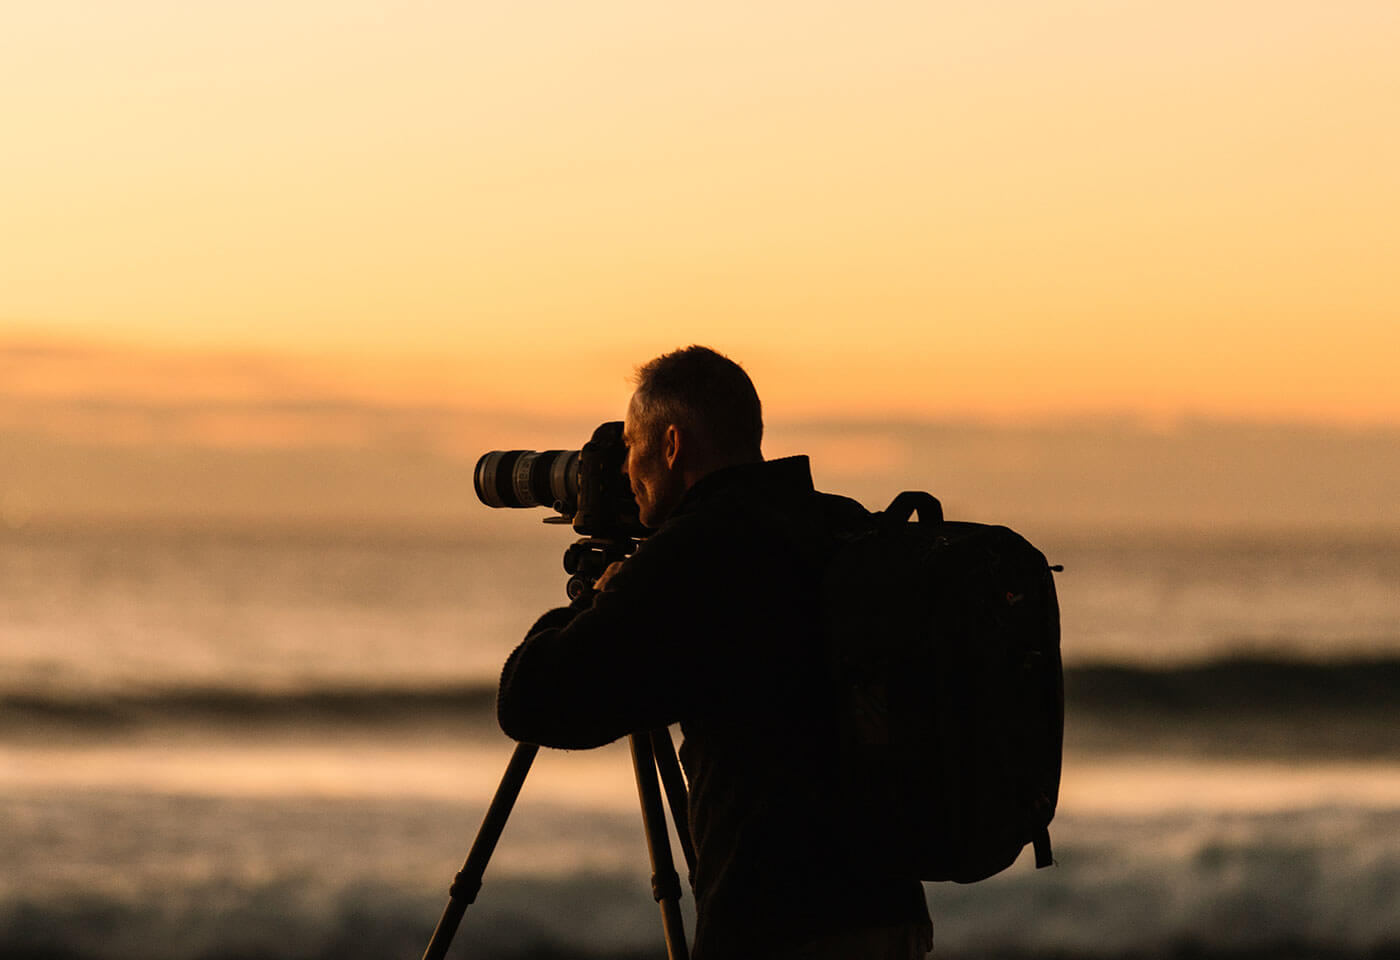 Photographer taking a sunset photograph